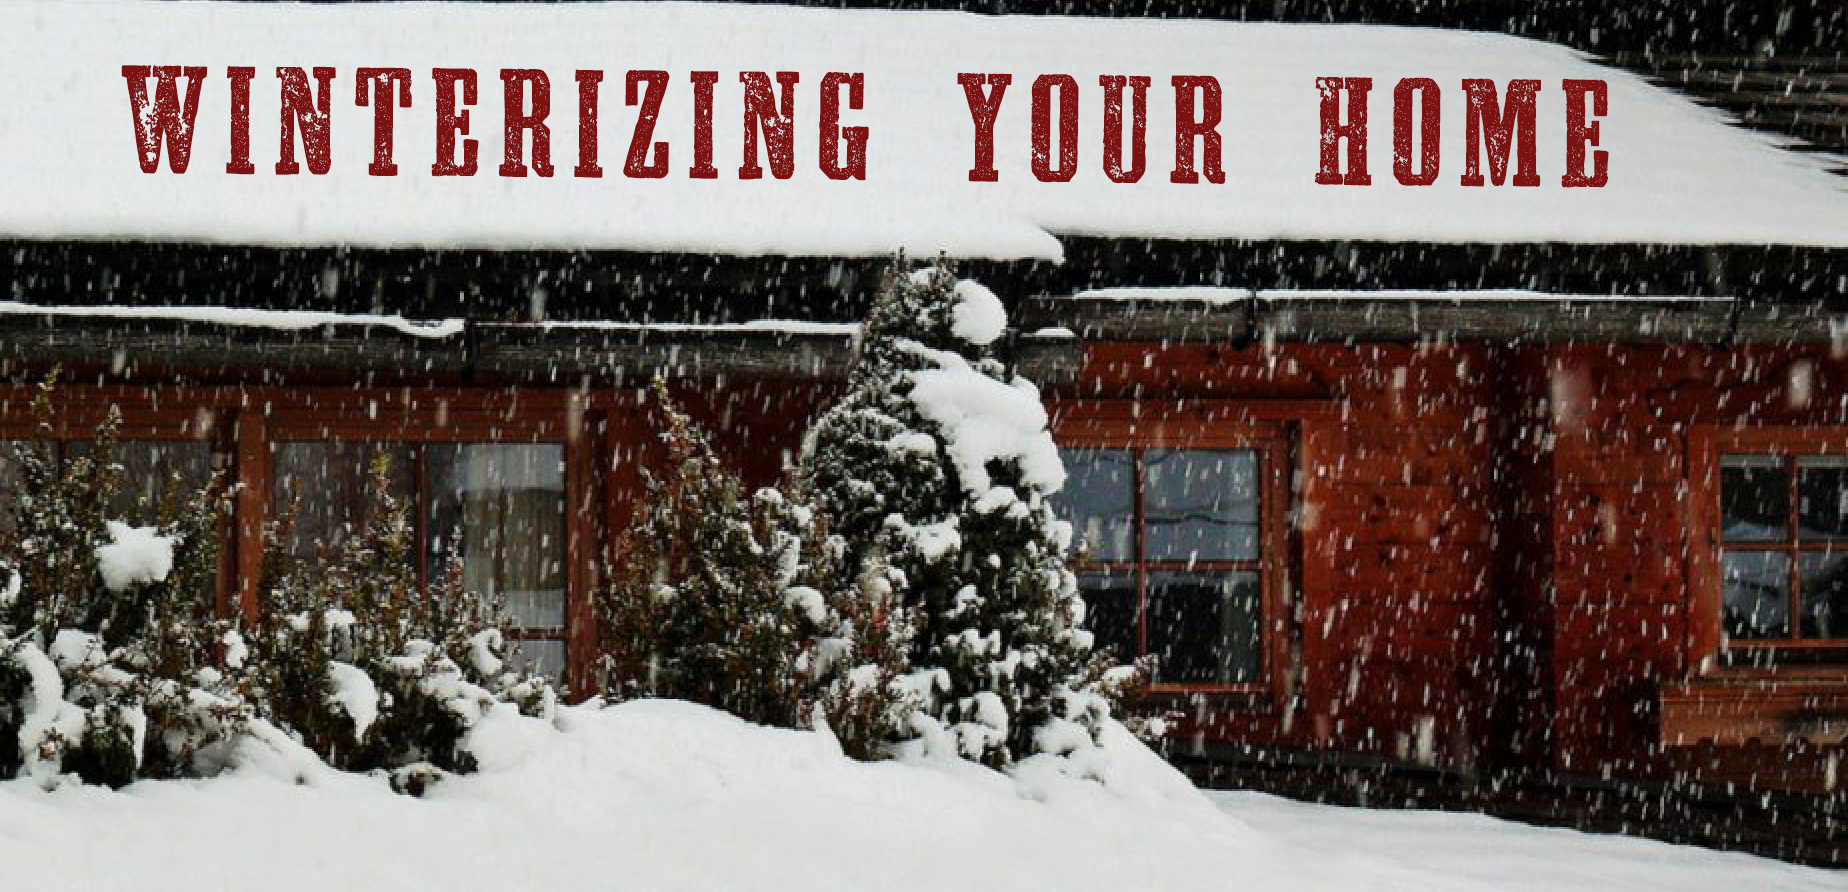 What Should Be On Quot Winterizing Your Home Quot Checklist